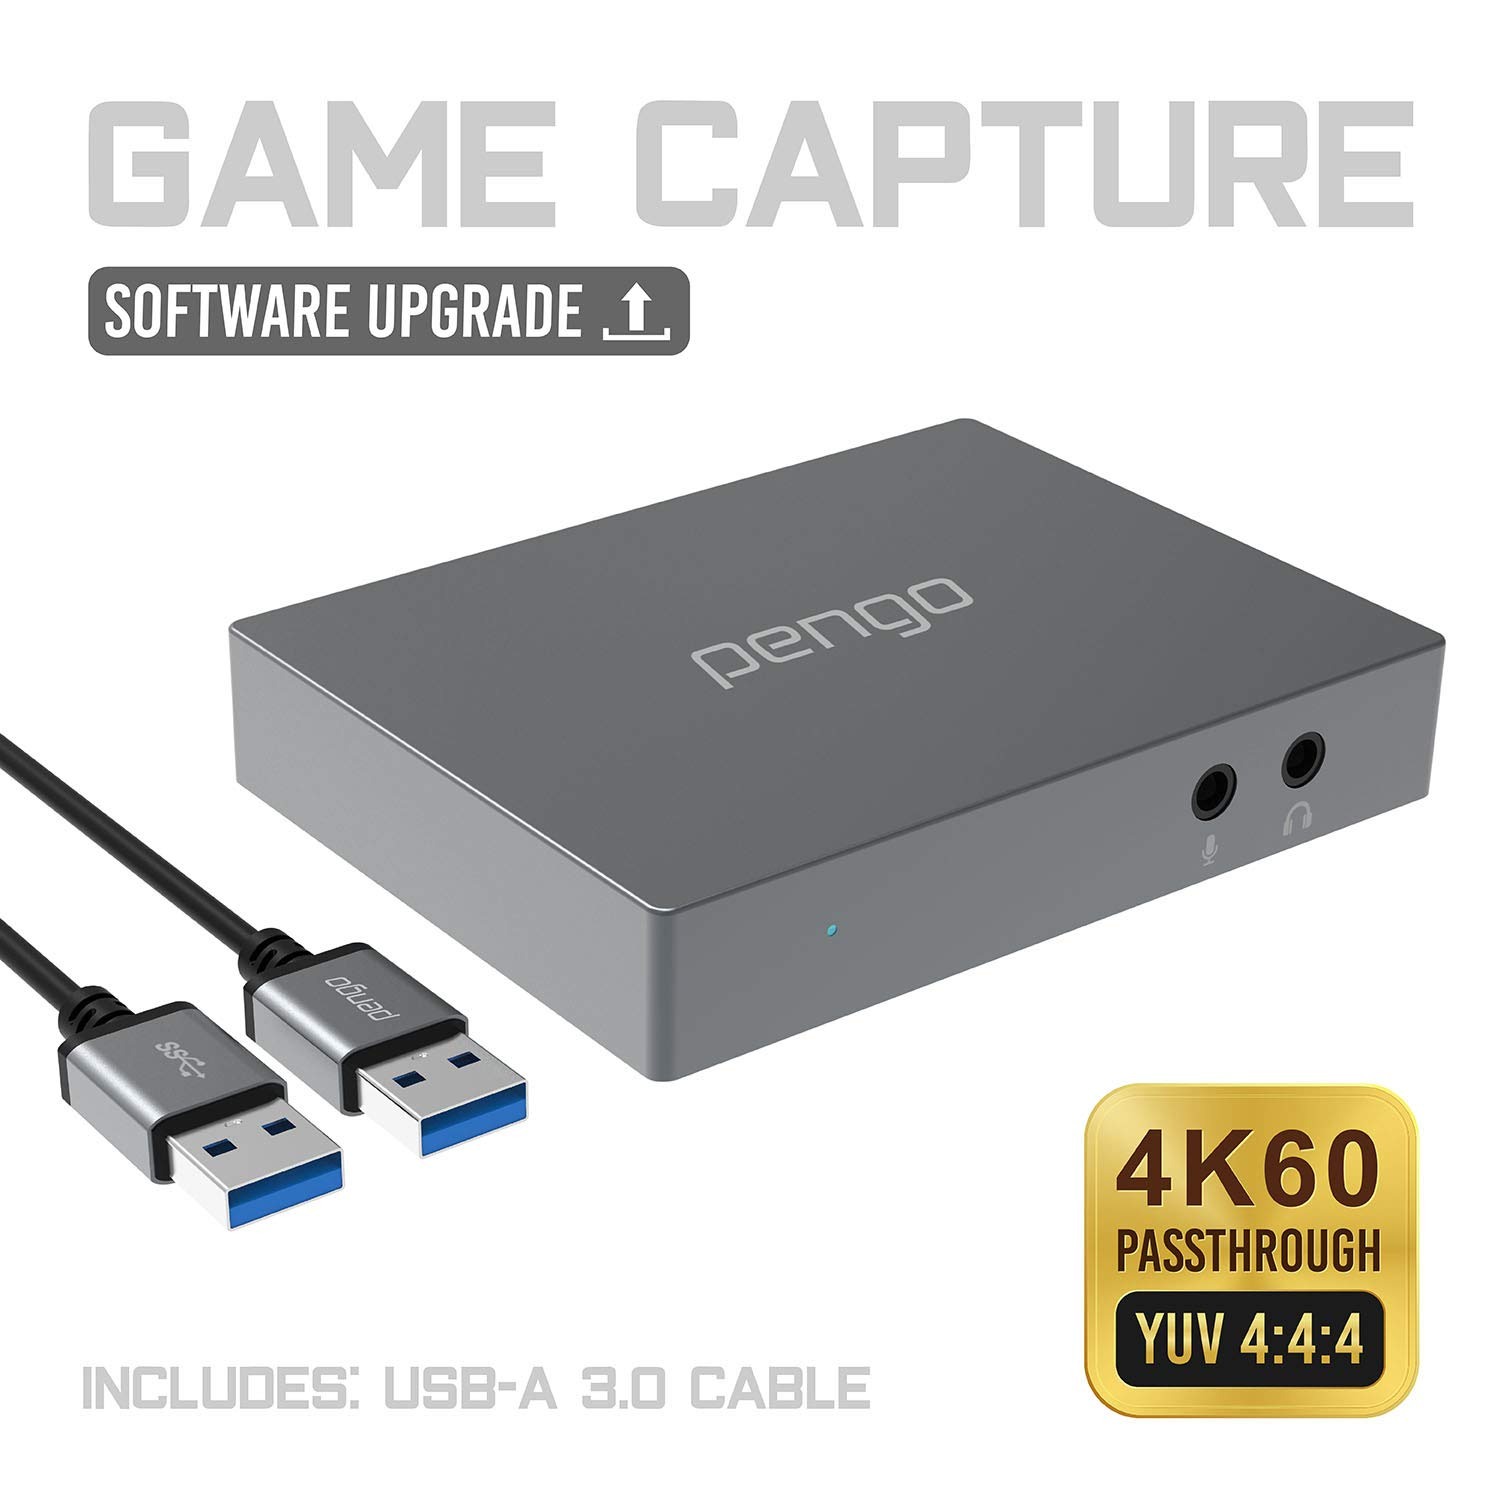 Pengo 4K HDMI Pass-Through Grabber, Game Capture Card at 1080p @60, No Driver, USB 3.0 UVC Works with Win, Mac OSX, min to no Latency, Livestream for Xbox One, PS4 (no HDCP), Switch (Aluminum)